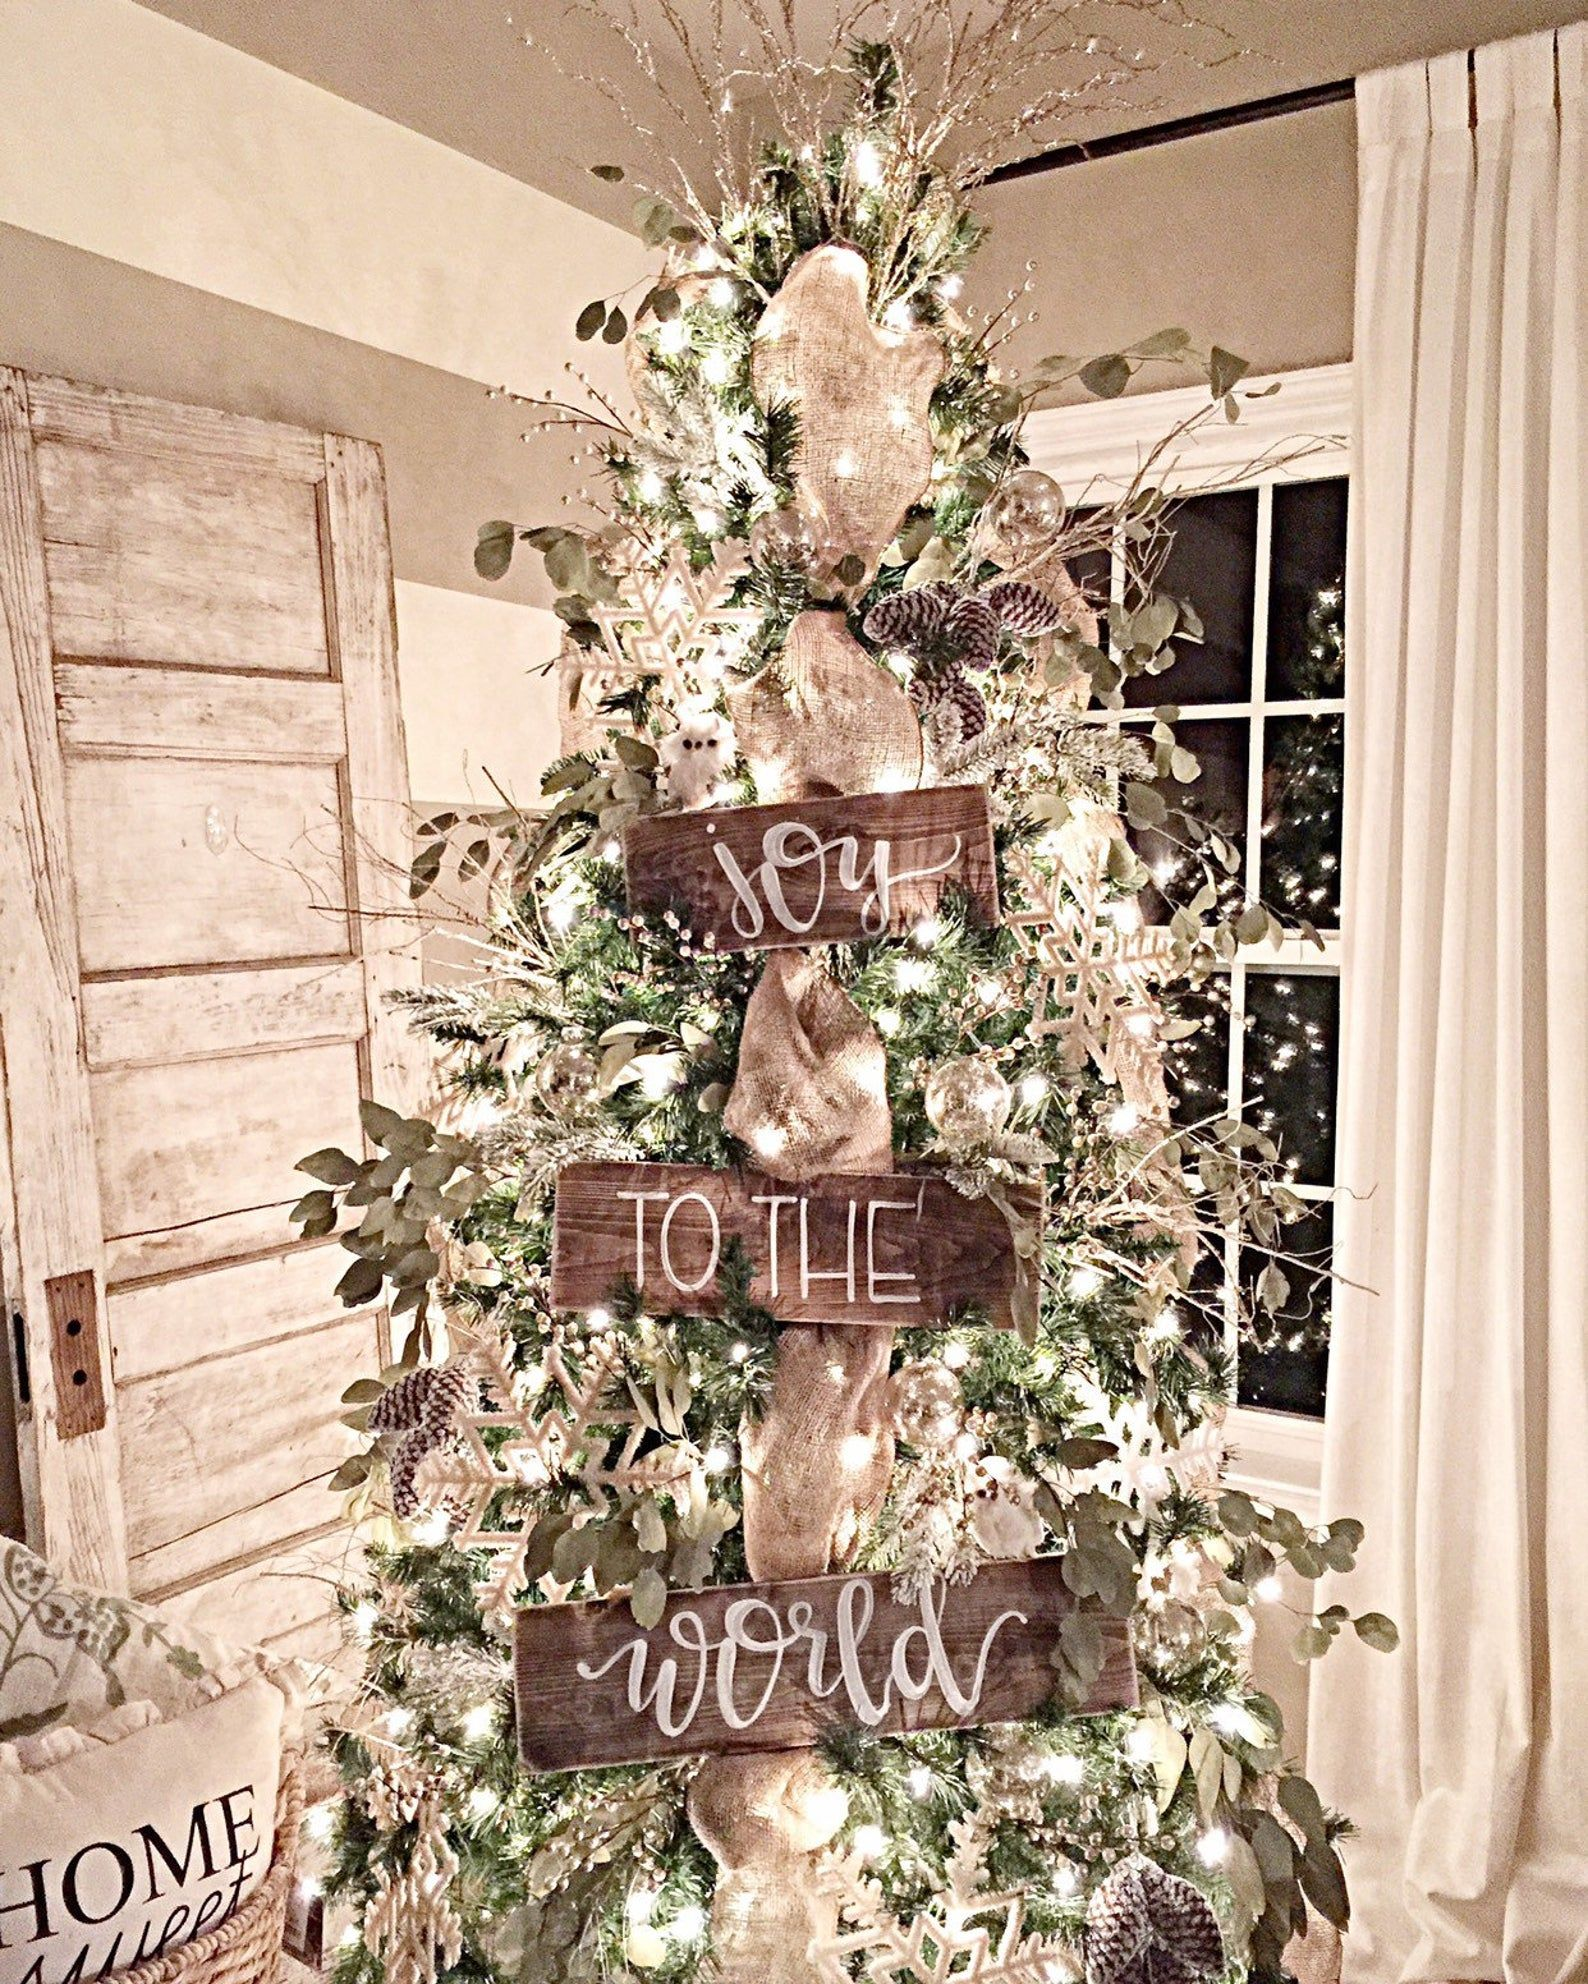 Joy To The World Wood Tree Signs Christmas Tree Decor Rustic Christmas Decor In 2020 Christmas Tree Inspiration Christmas Decorations Rustic Christmas Tree Themes